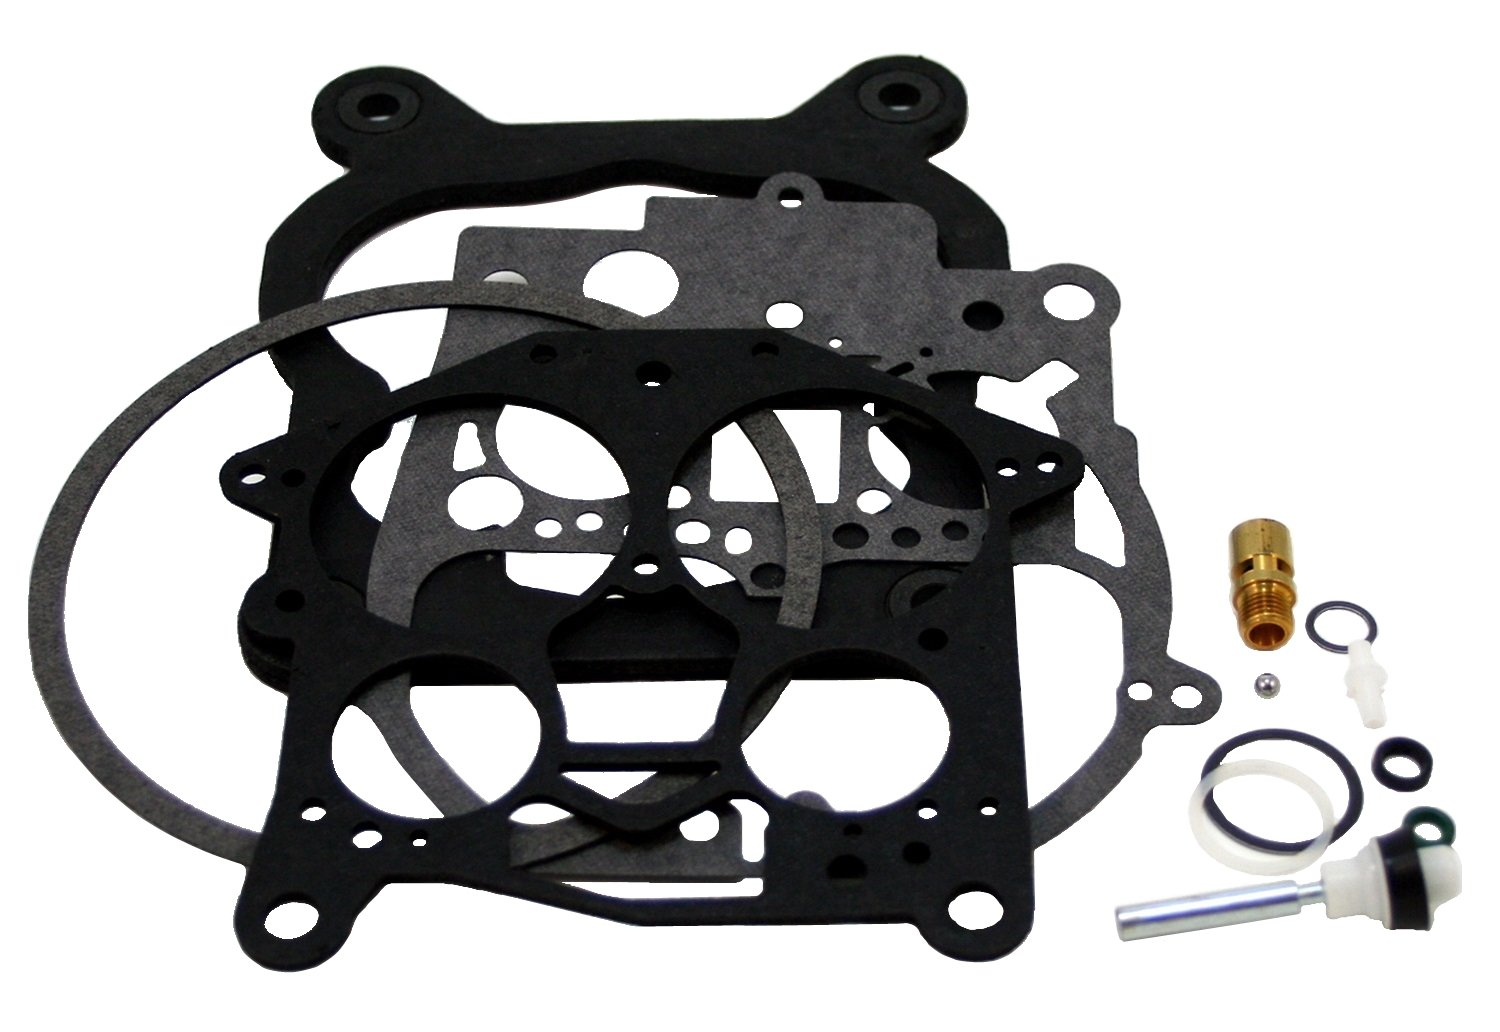 JET 201003 M4 Quadrajet Rebuild Kit Jet Performance